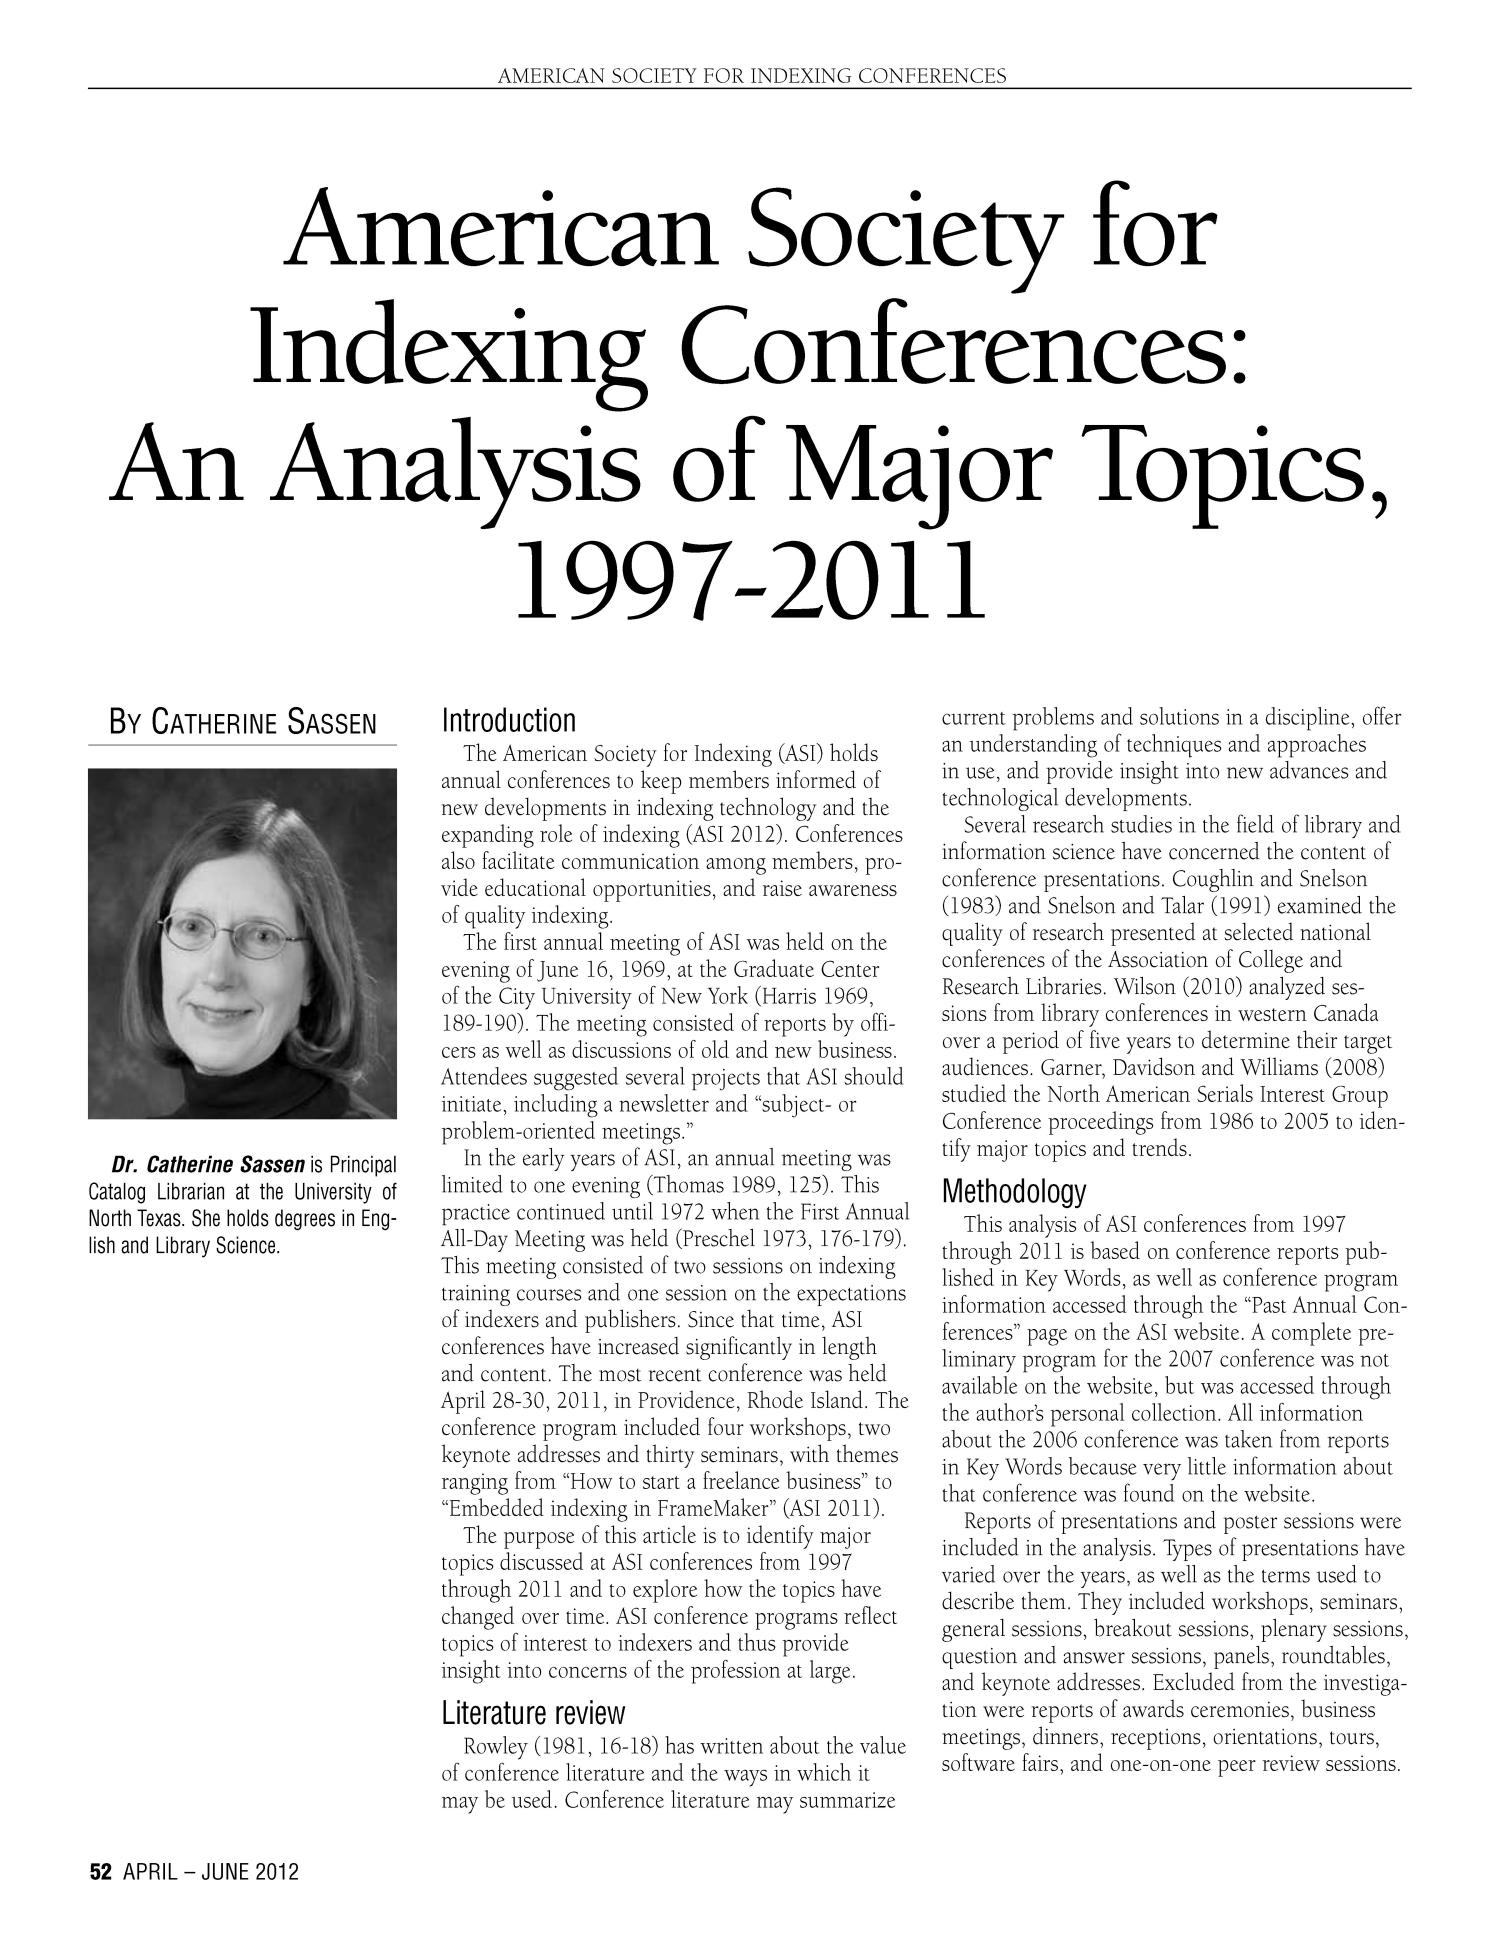 American Society for Indexing Conferences: An Analysis of Major Topics, 1997-2011                                                                                                      52